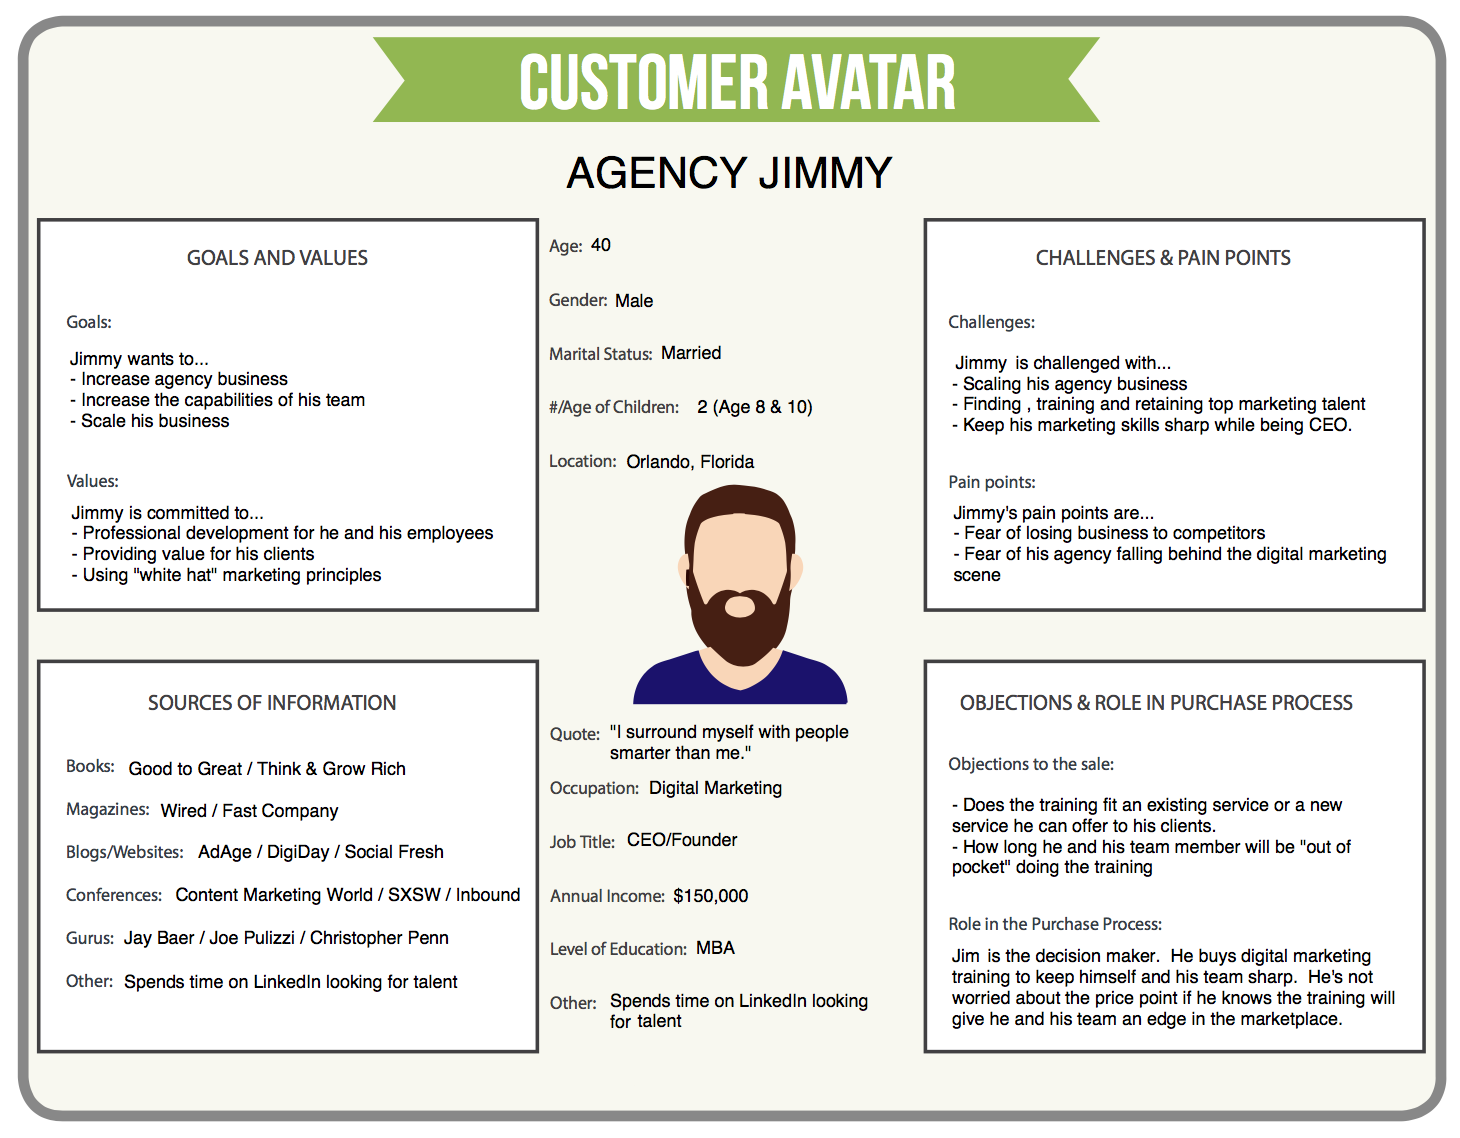 worksheet Think And Grow Rich Worksheet everything i learned from wordcamp kc 2018 day 2 ontarget before an audit you need to determine a clearly defined customer avatar can use the worksheet digital marketer